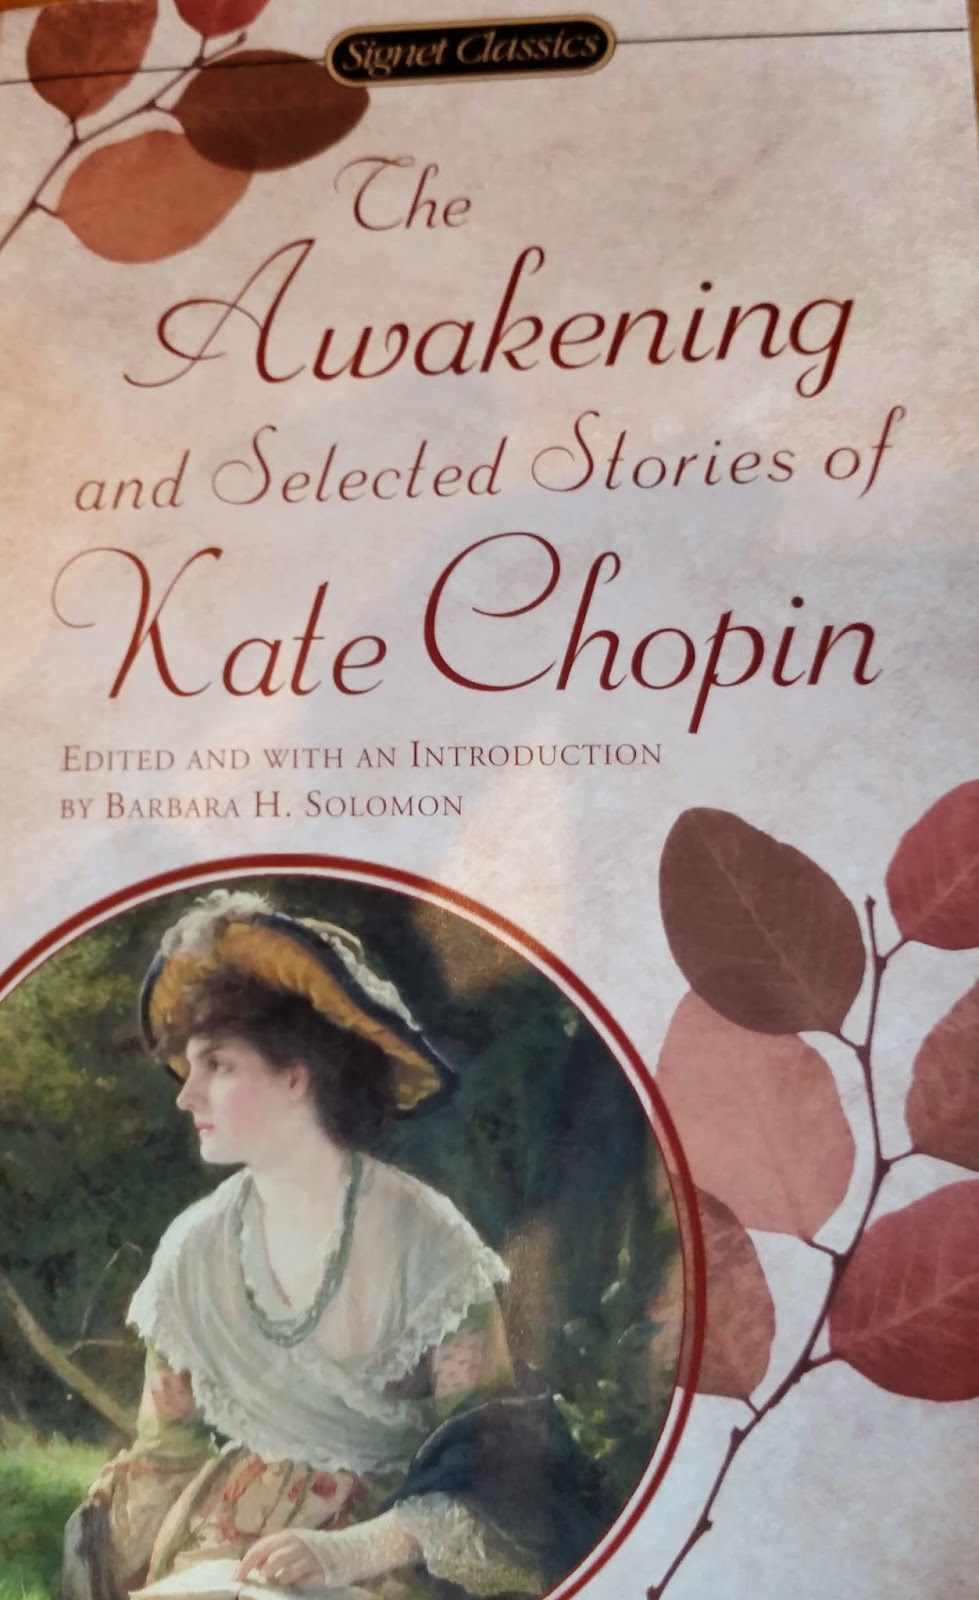 Book cover to The Awakening and Selected Stories of Kate Chopin, by Kate Chopin and edited by Barbara H. Solomon; Signet Classics, 1976.